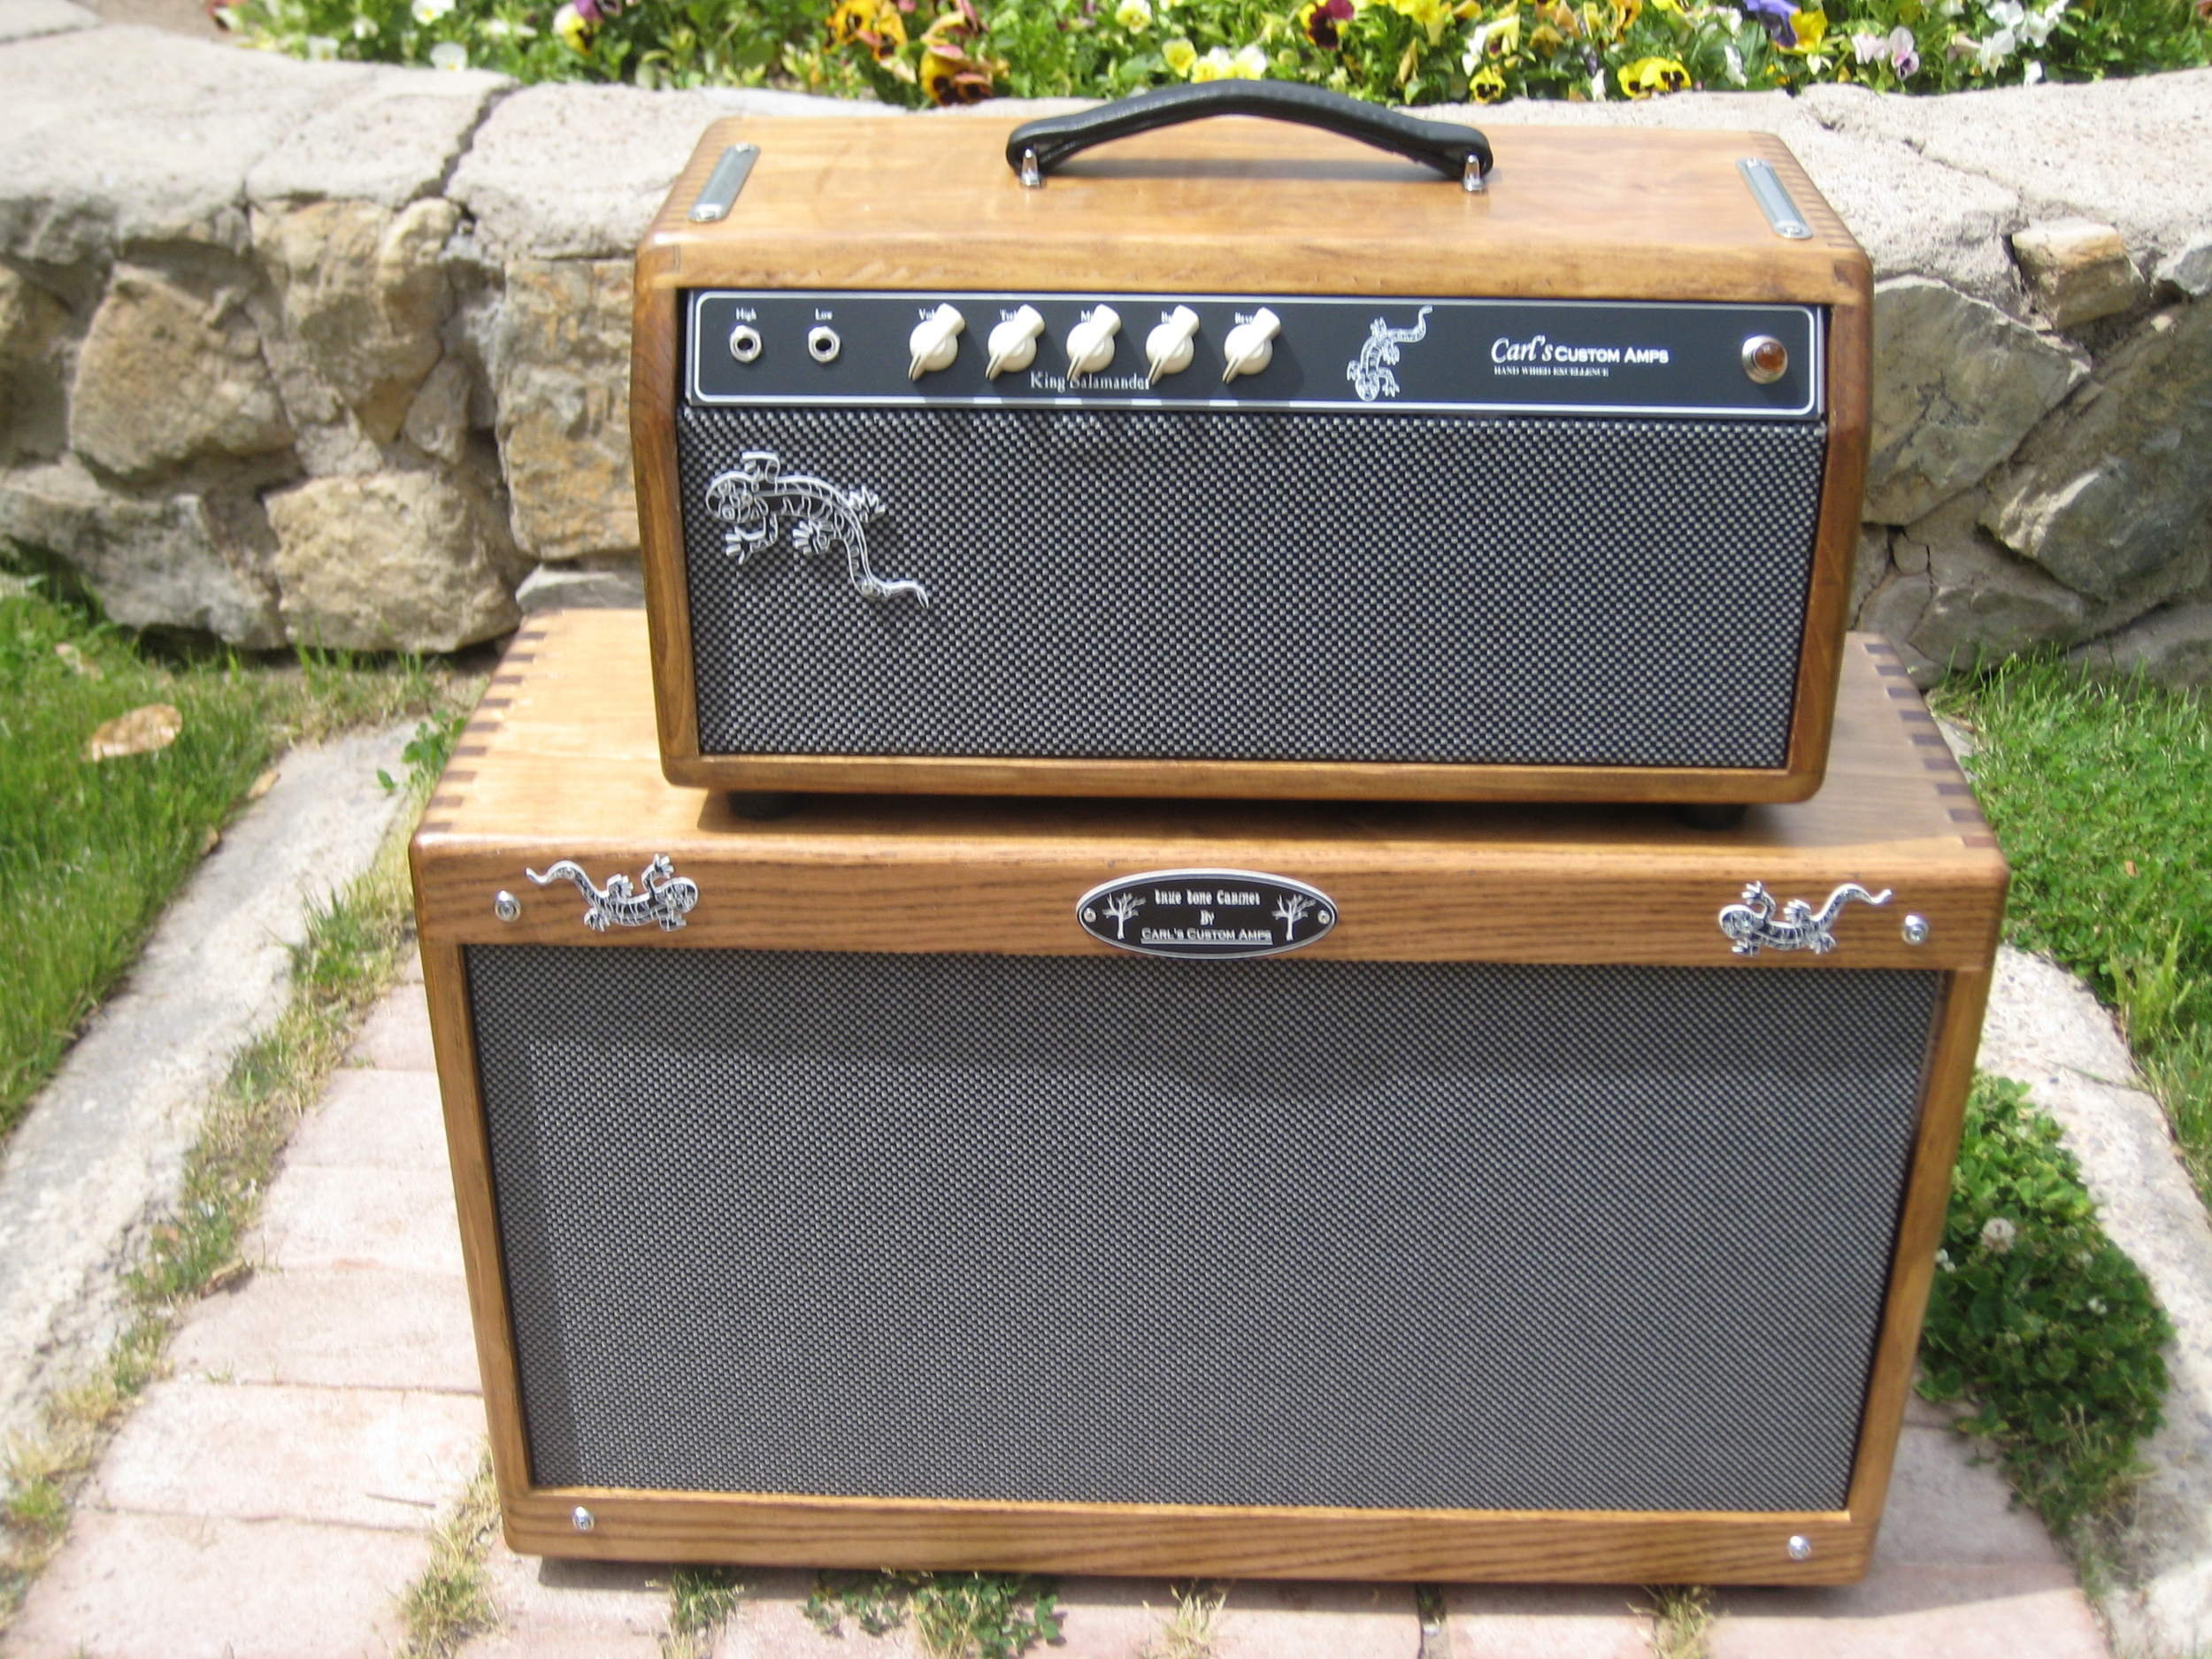 This custom amp was built for the band King Salamander. Unique improved Fender Blackface circuit with reverb. The cab has a pair of Weber Speakers